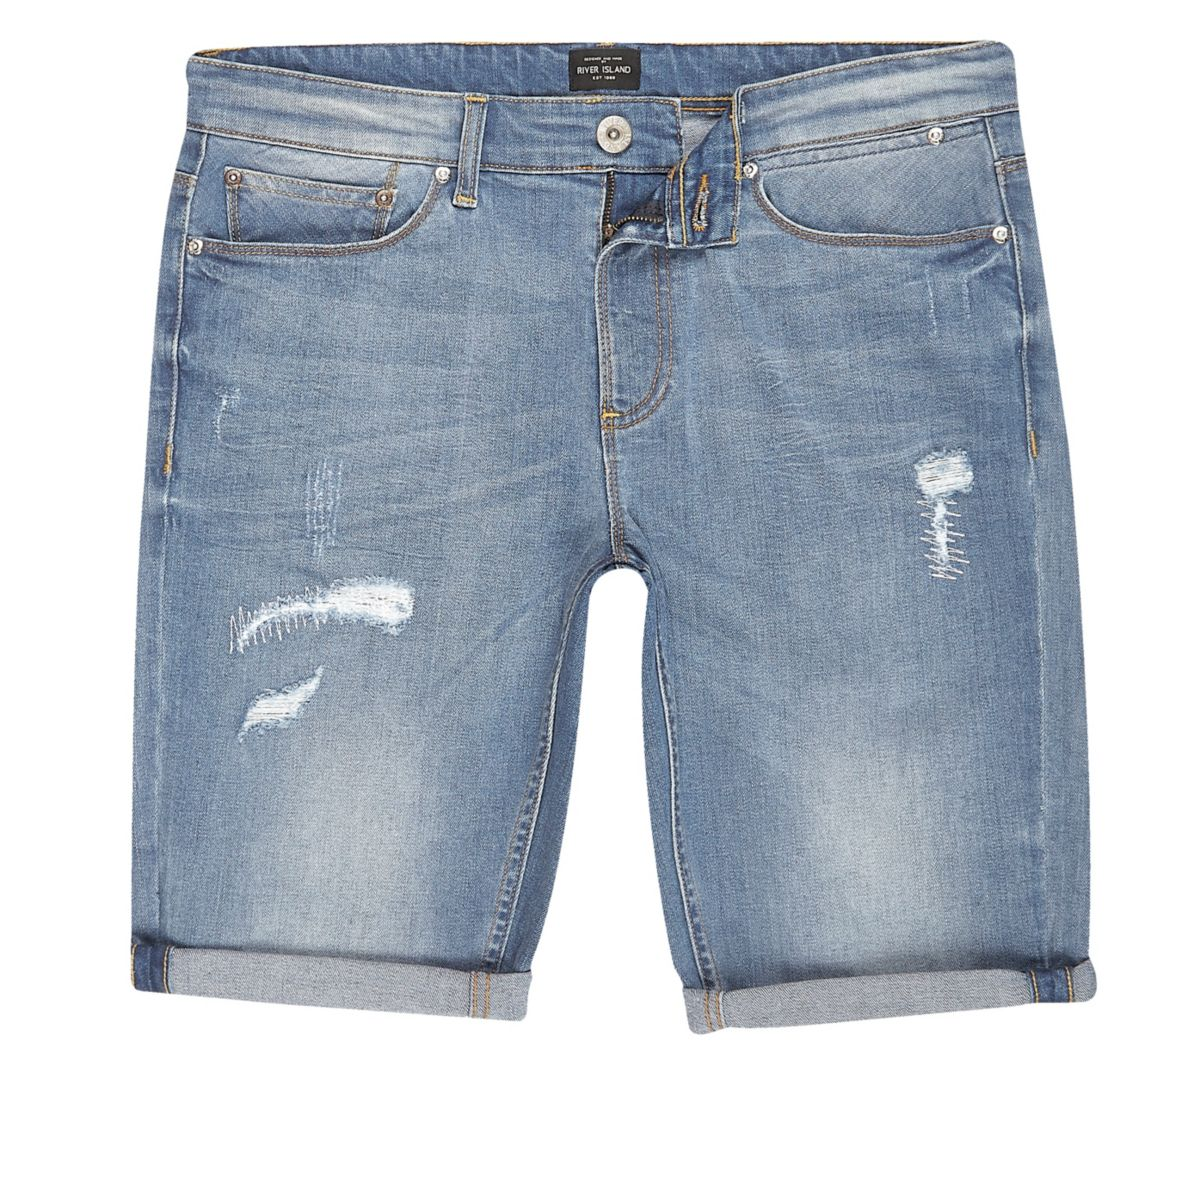 Blue wash distressed skinny fit denim shorts